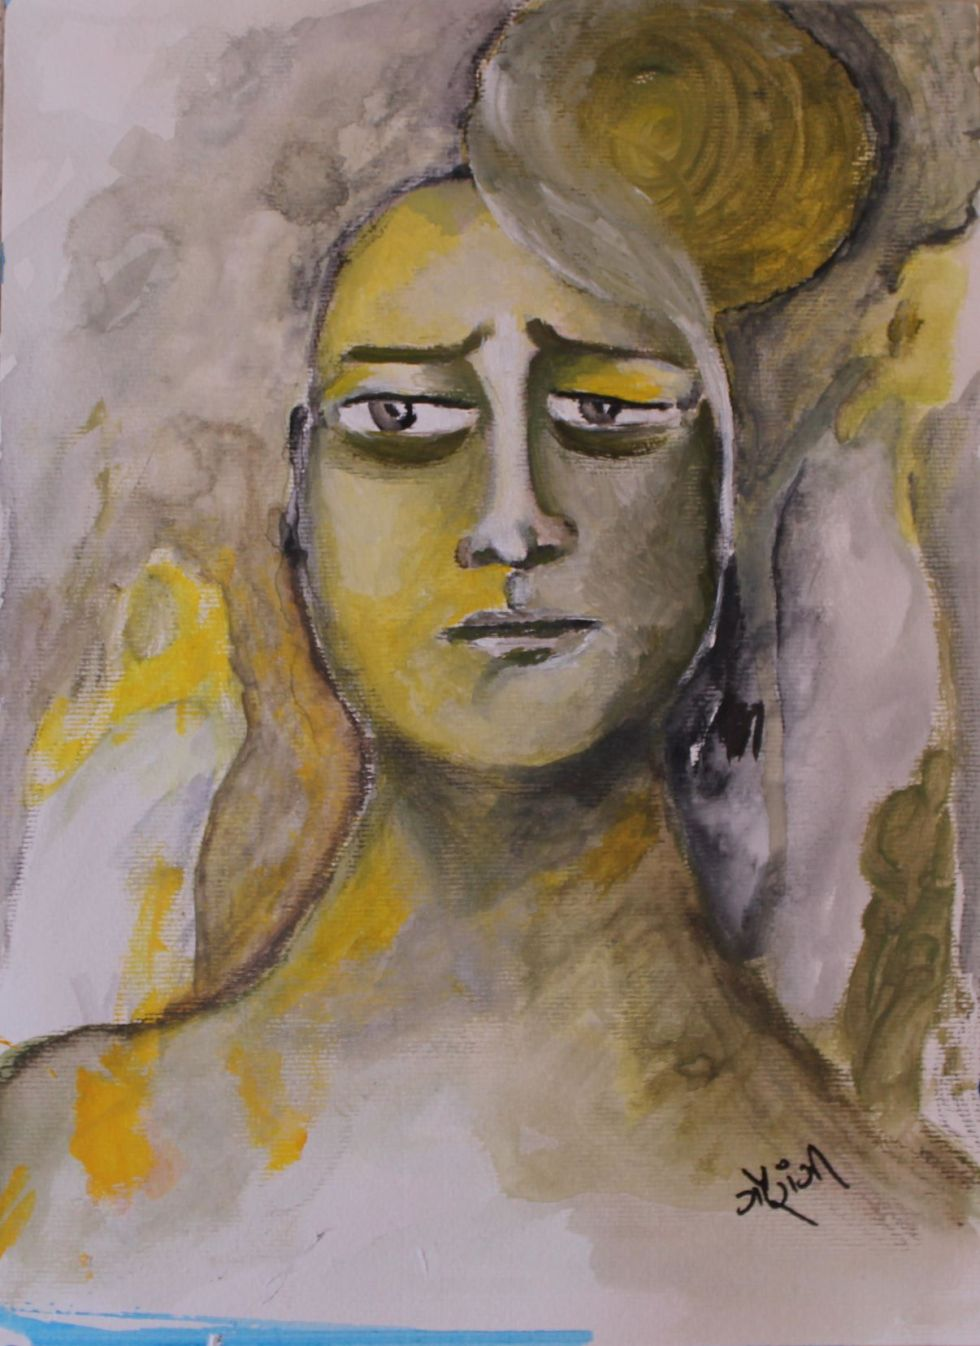 Title: Melt-down Medium: Acrylic and charcoal on watercolour paper Size: 11.7*16.5 inches (2017) Artist: gaurangi mehta shah